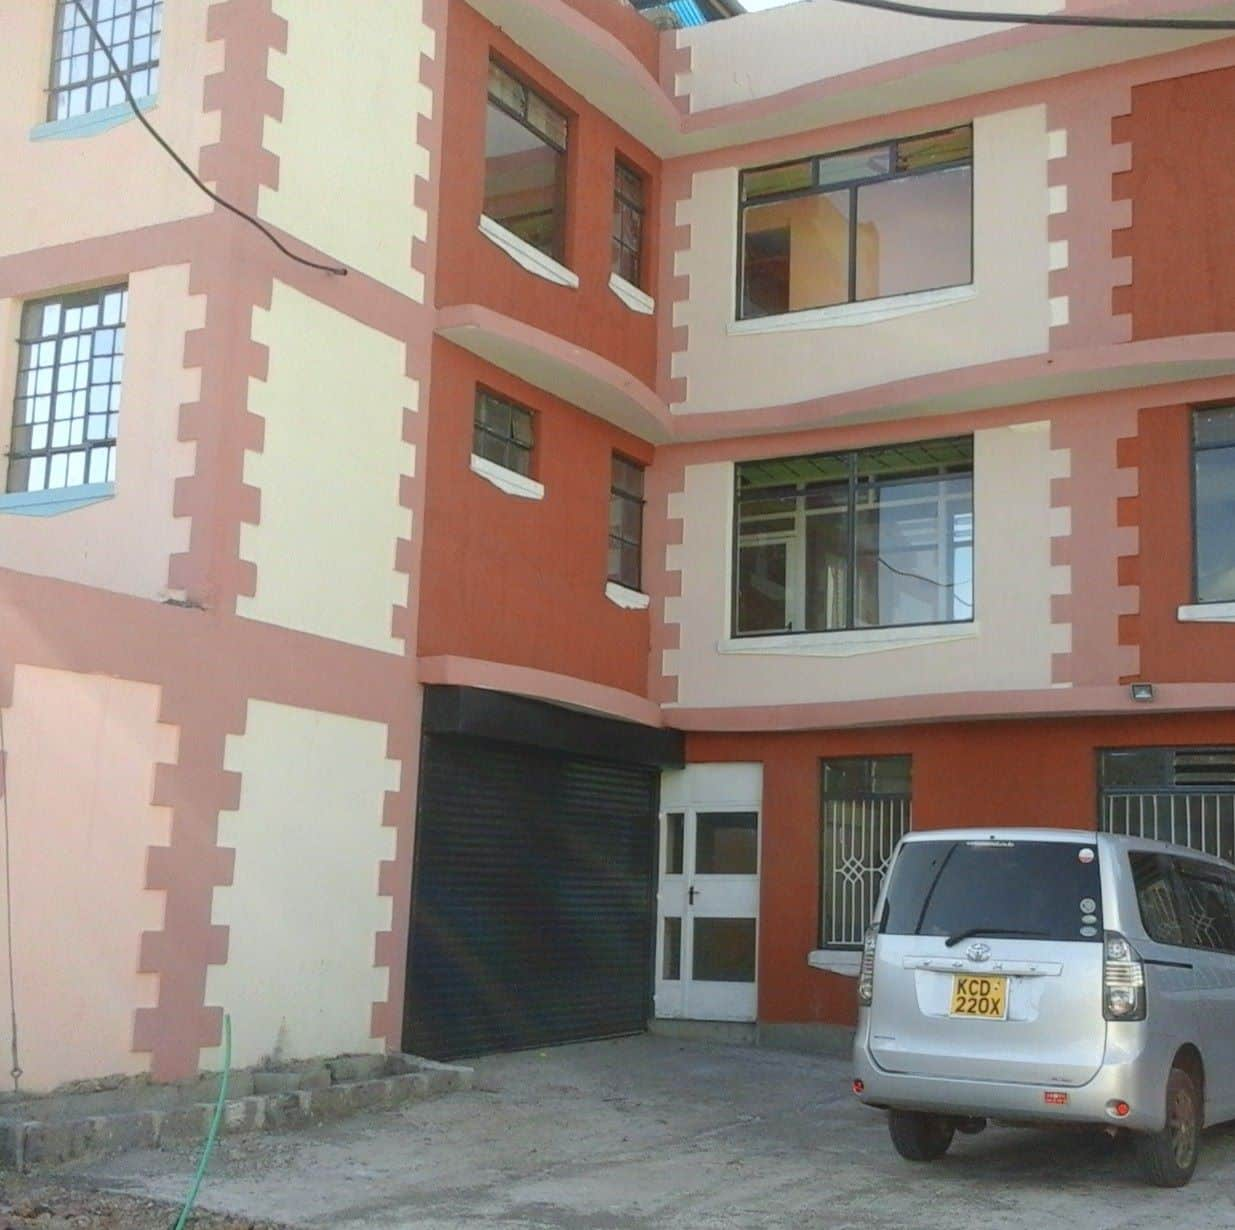 Airport Gateview Hotel